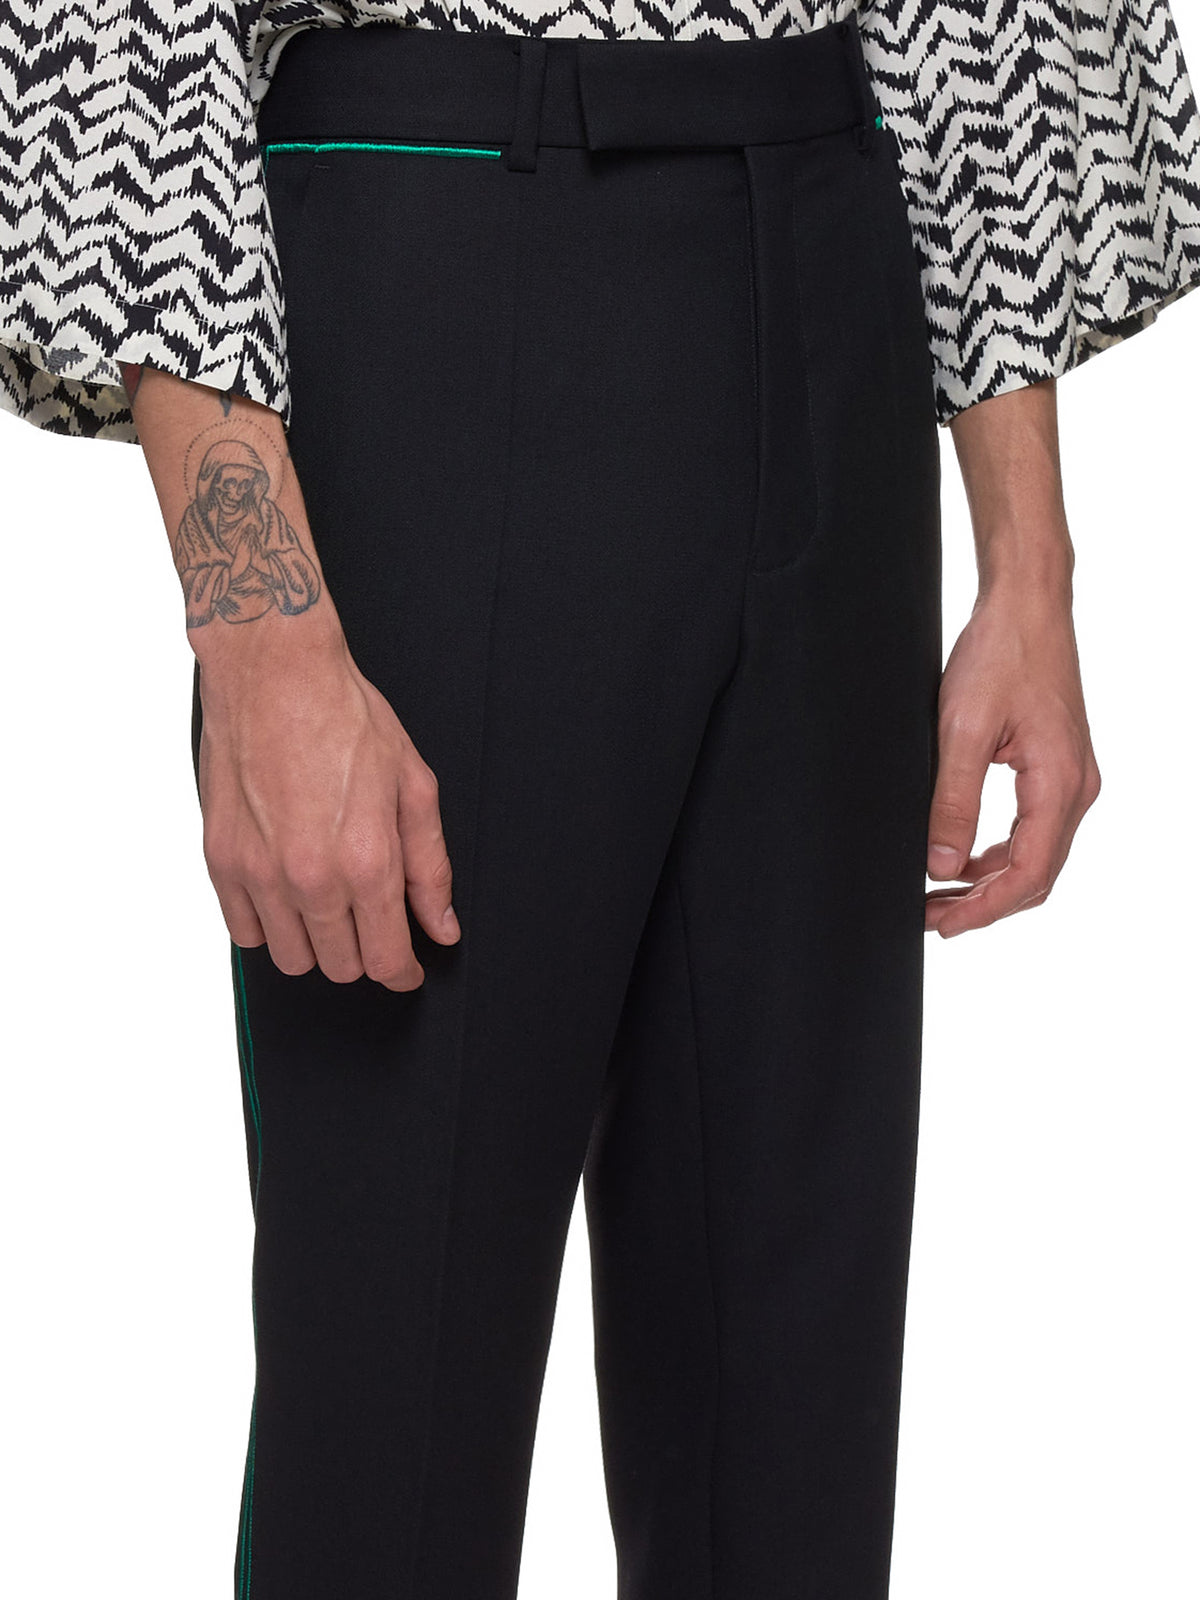 Haider Ackermann Pants - Hlorenzo Detail 2